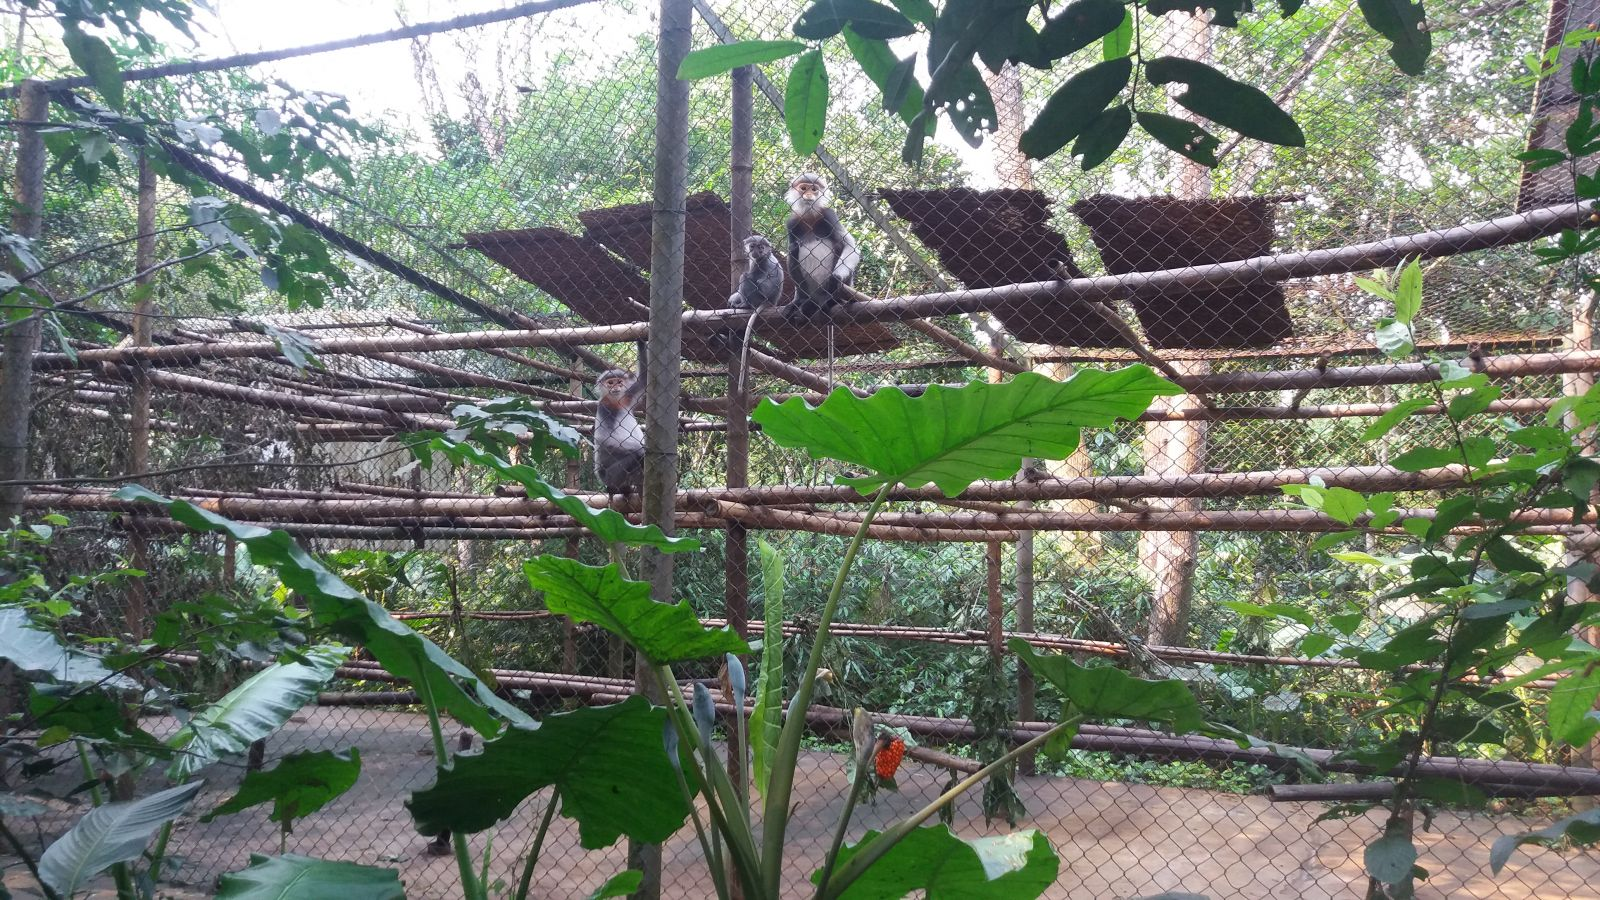 Cuc Phuong National Park- monkey